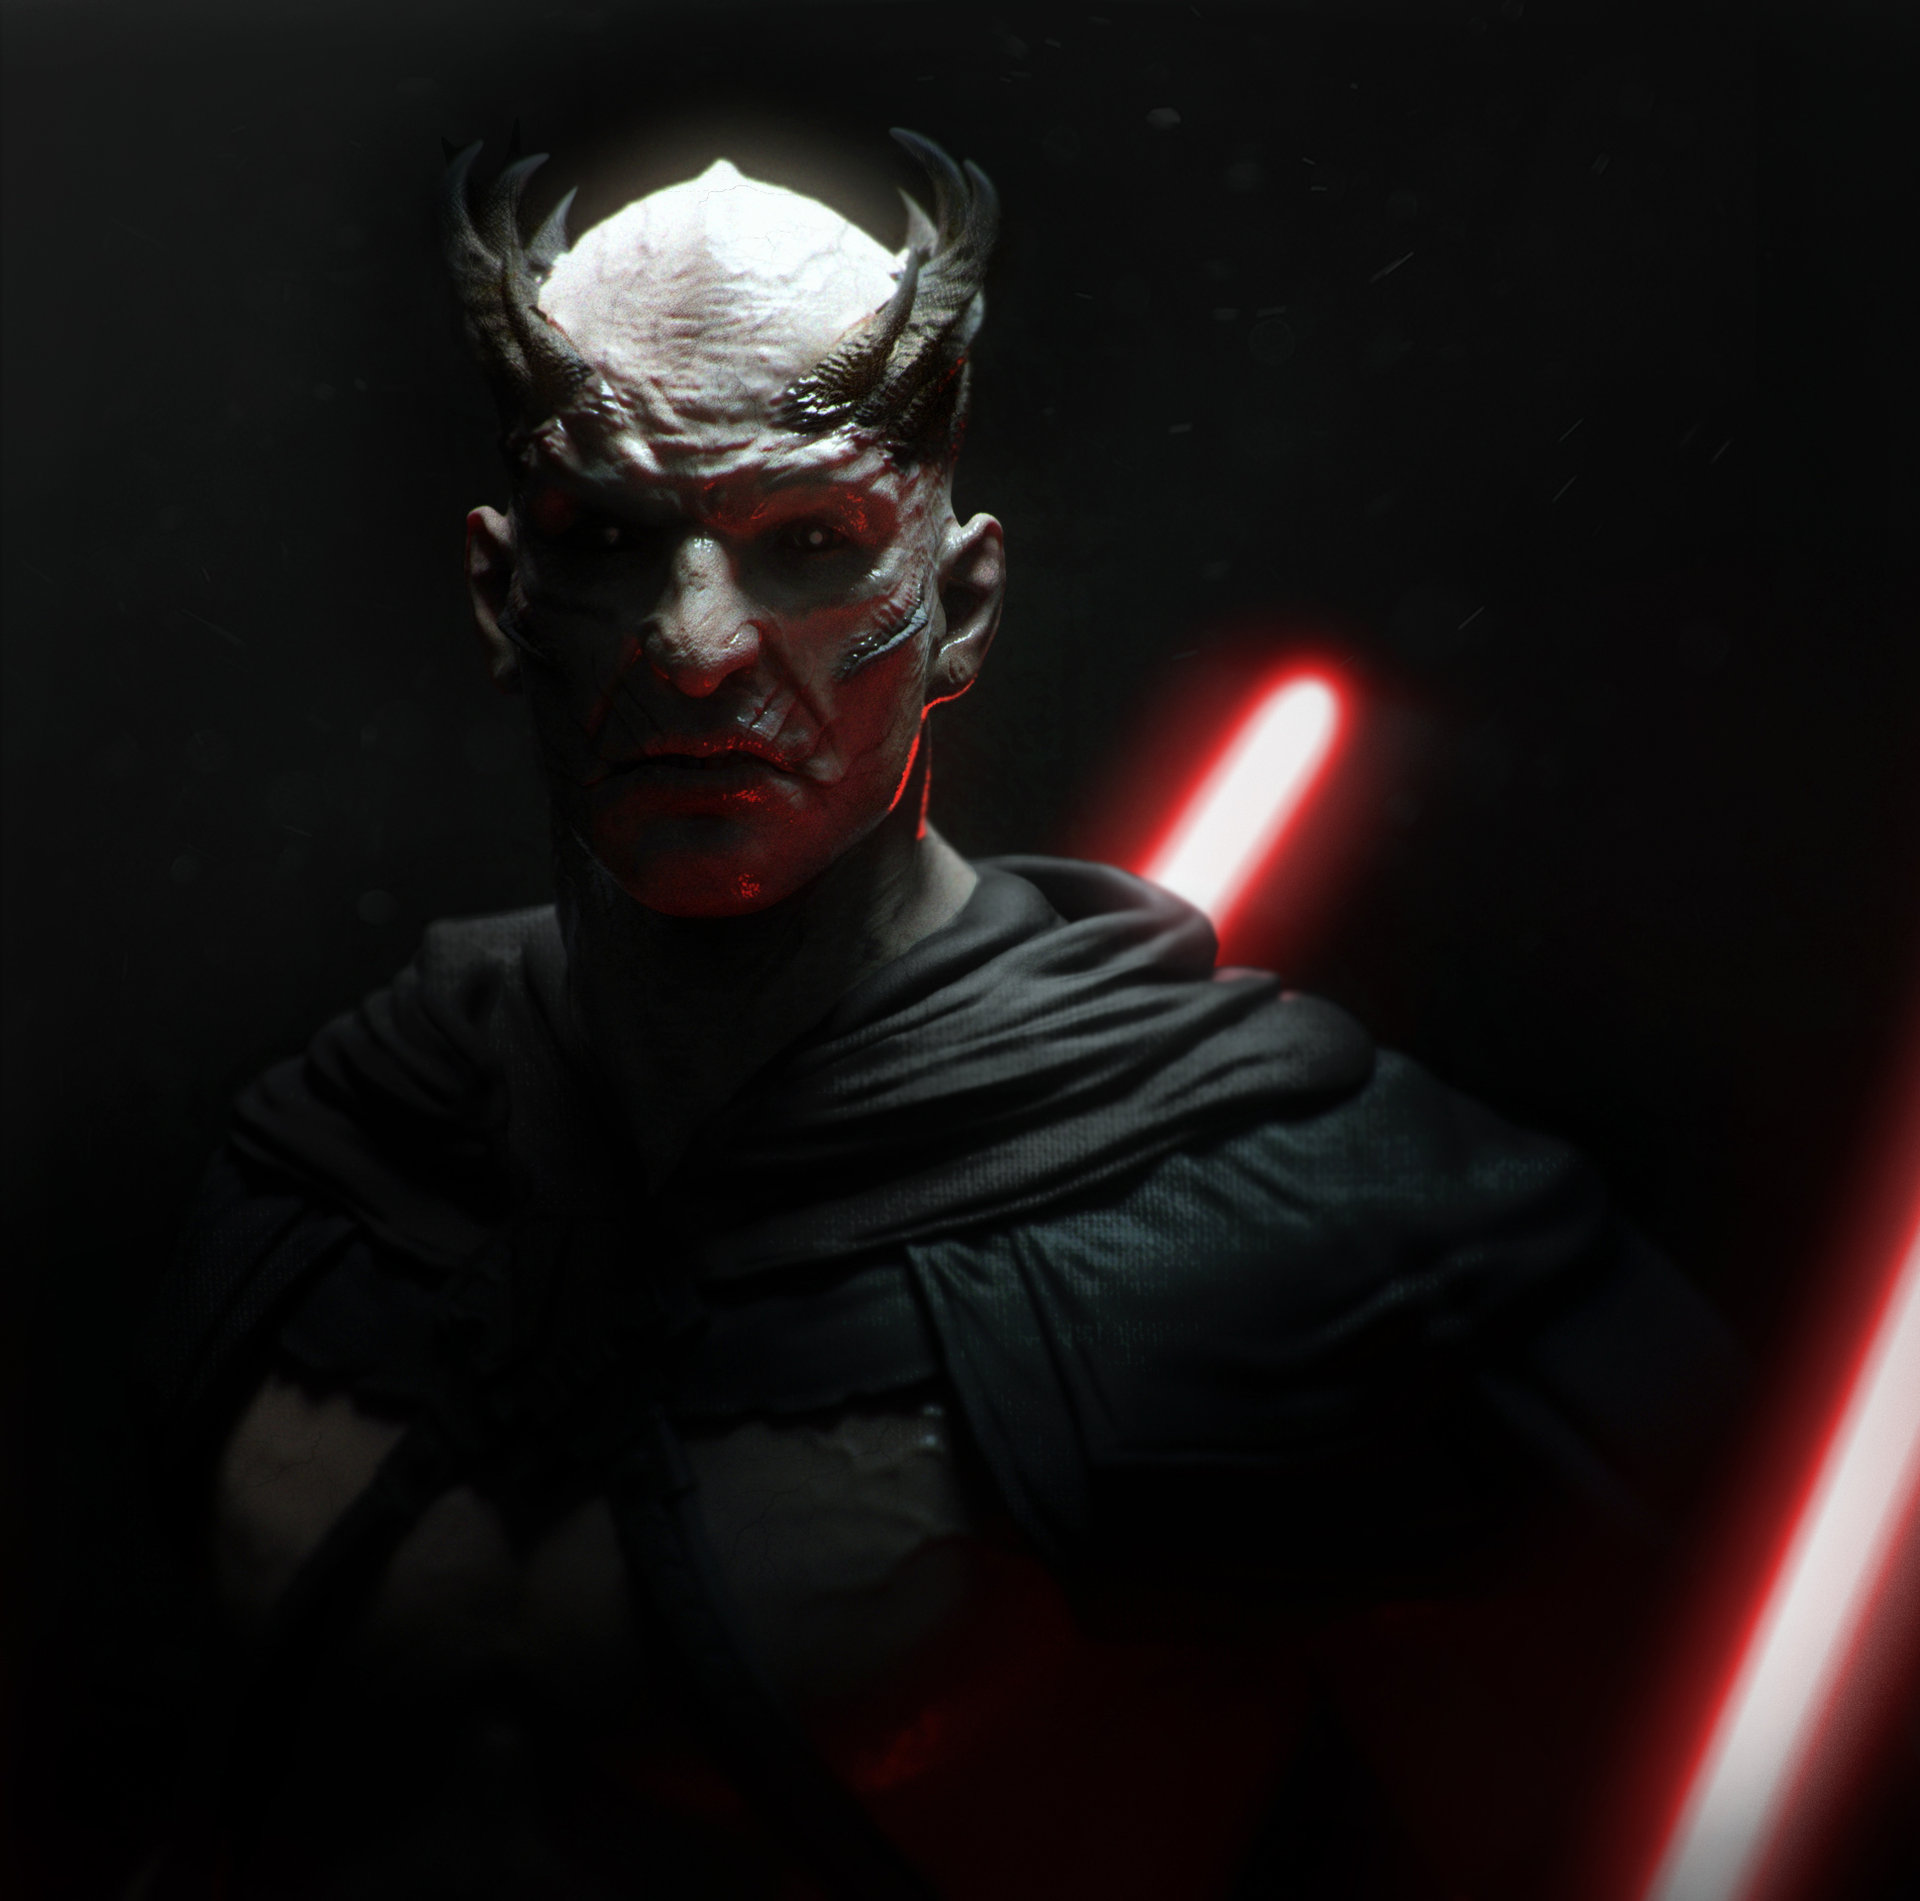 Star Wars Sith Lord Concept Art